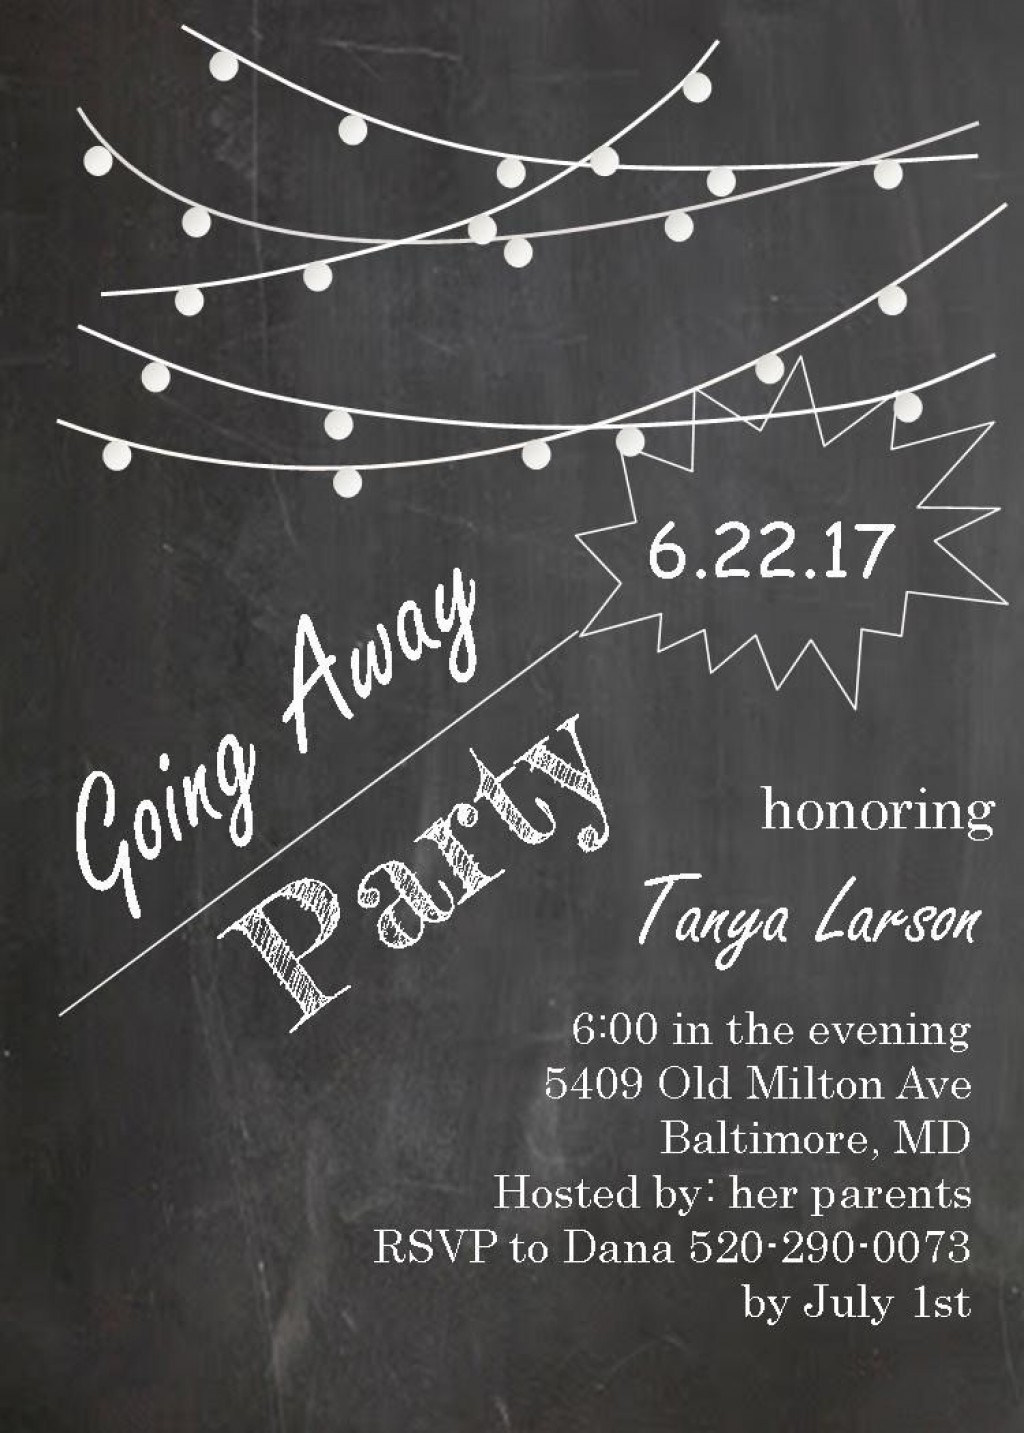 002 Phenomenal Going Away Party Invitation Template High Def  Free PrintableLarge